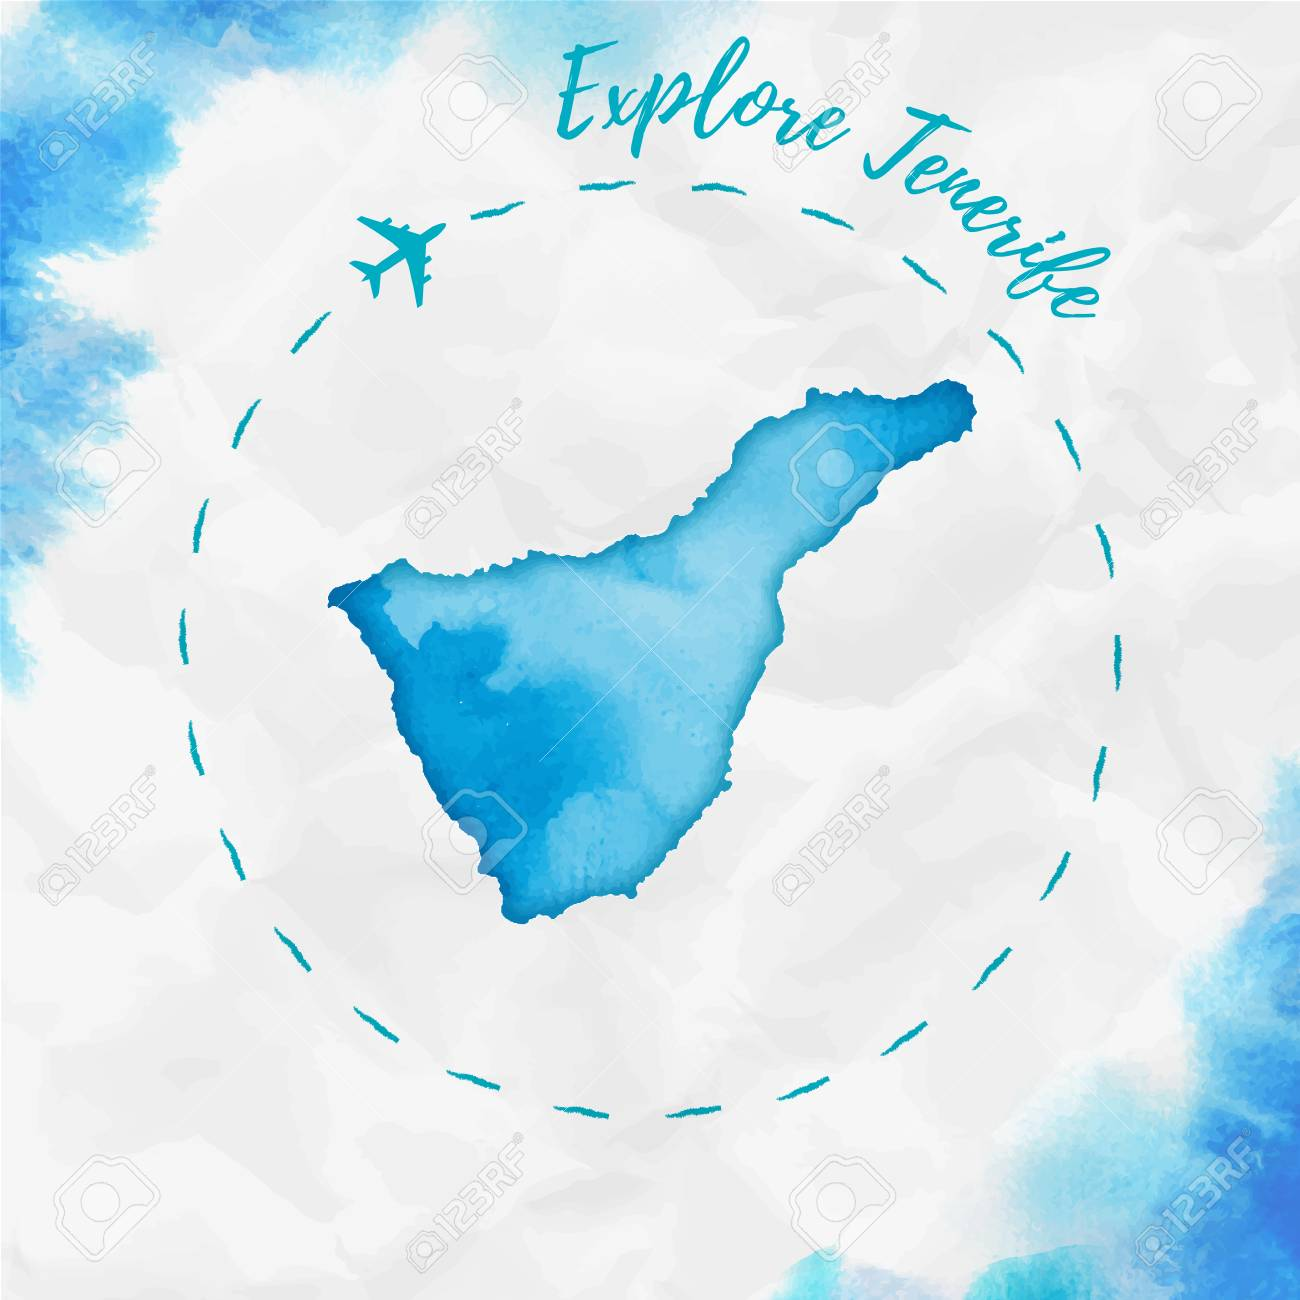 Tenerife island map in turquoise colors. Explore Tenerife poster with airplane trace and handpainted map on crumpled paper. Vector illustration. - 106954501